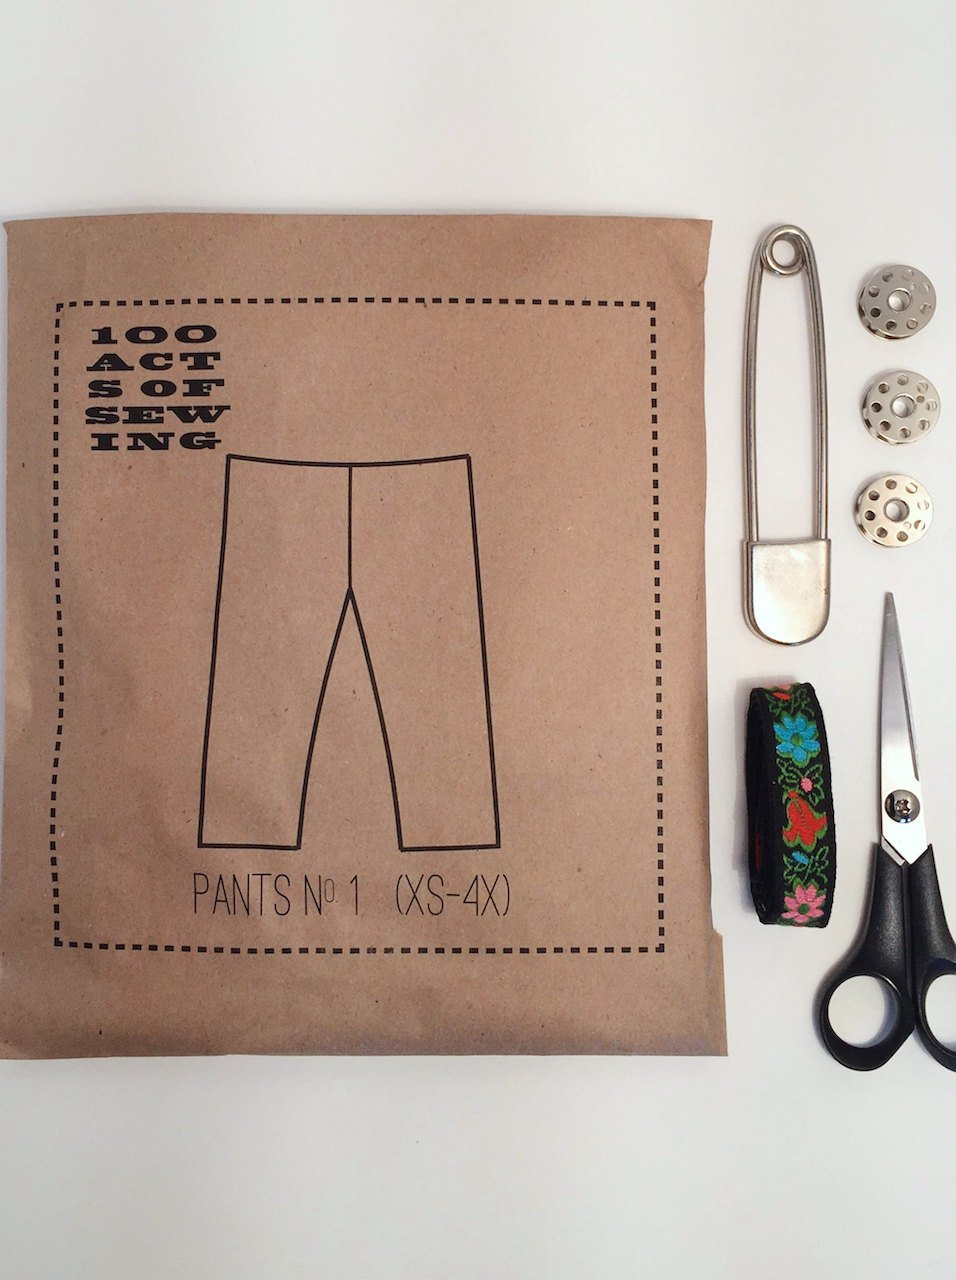 Pants No. 1, 100 Acts of Sewing Pattern.